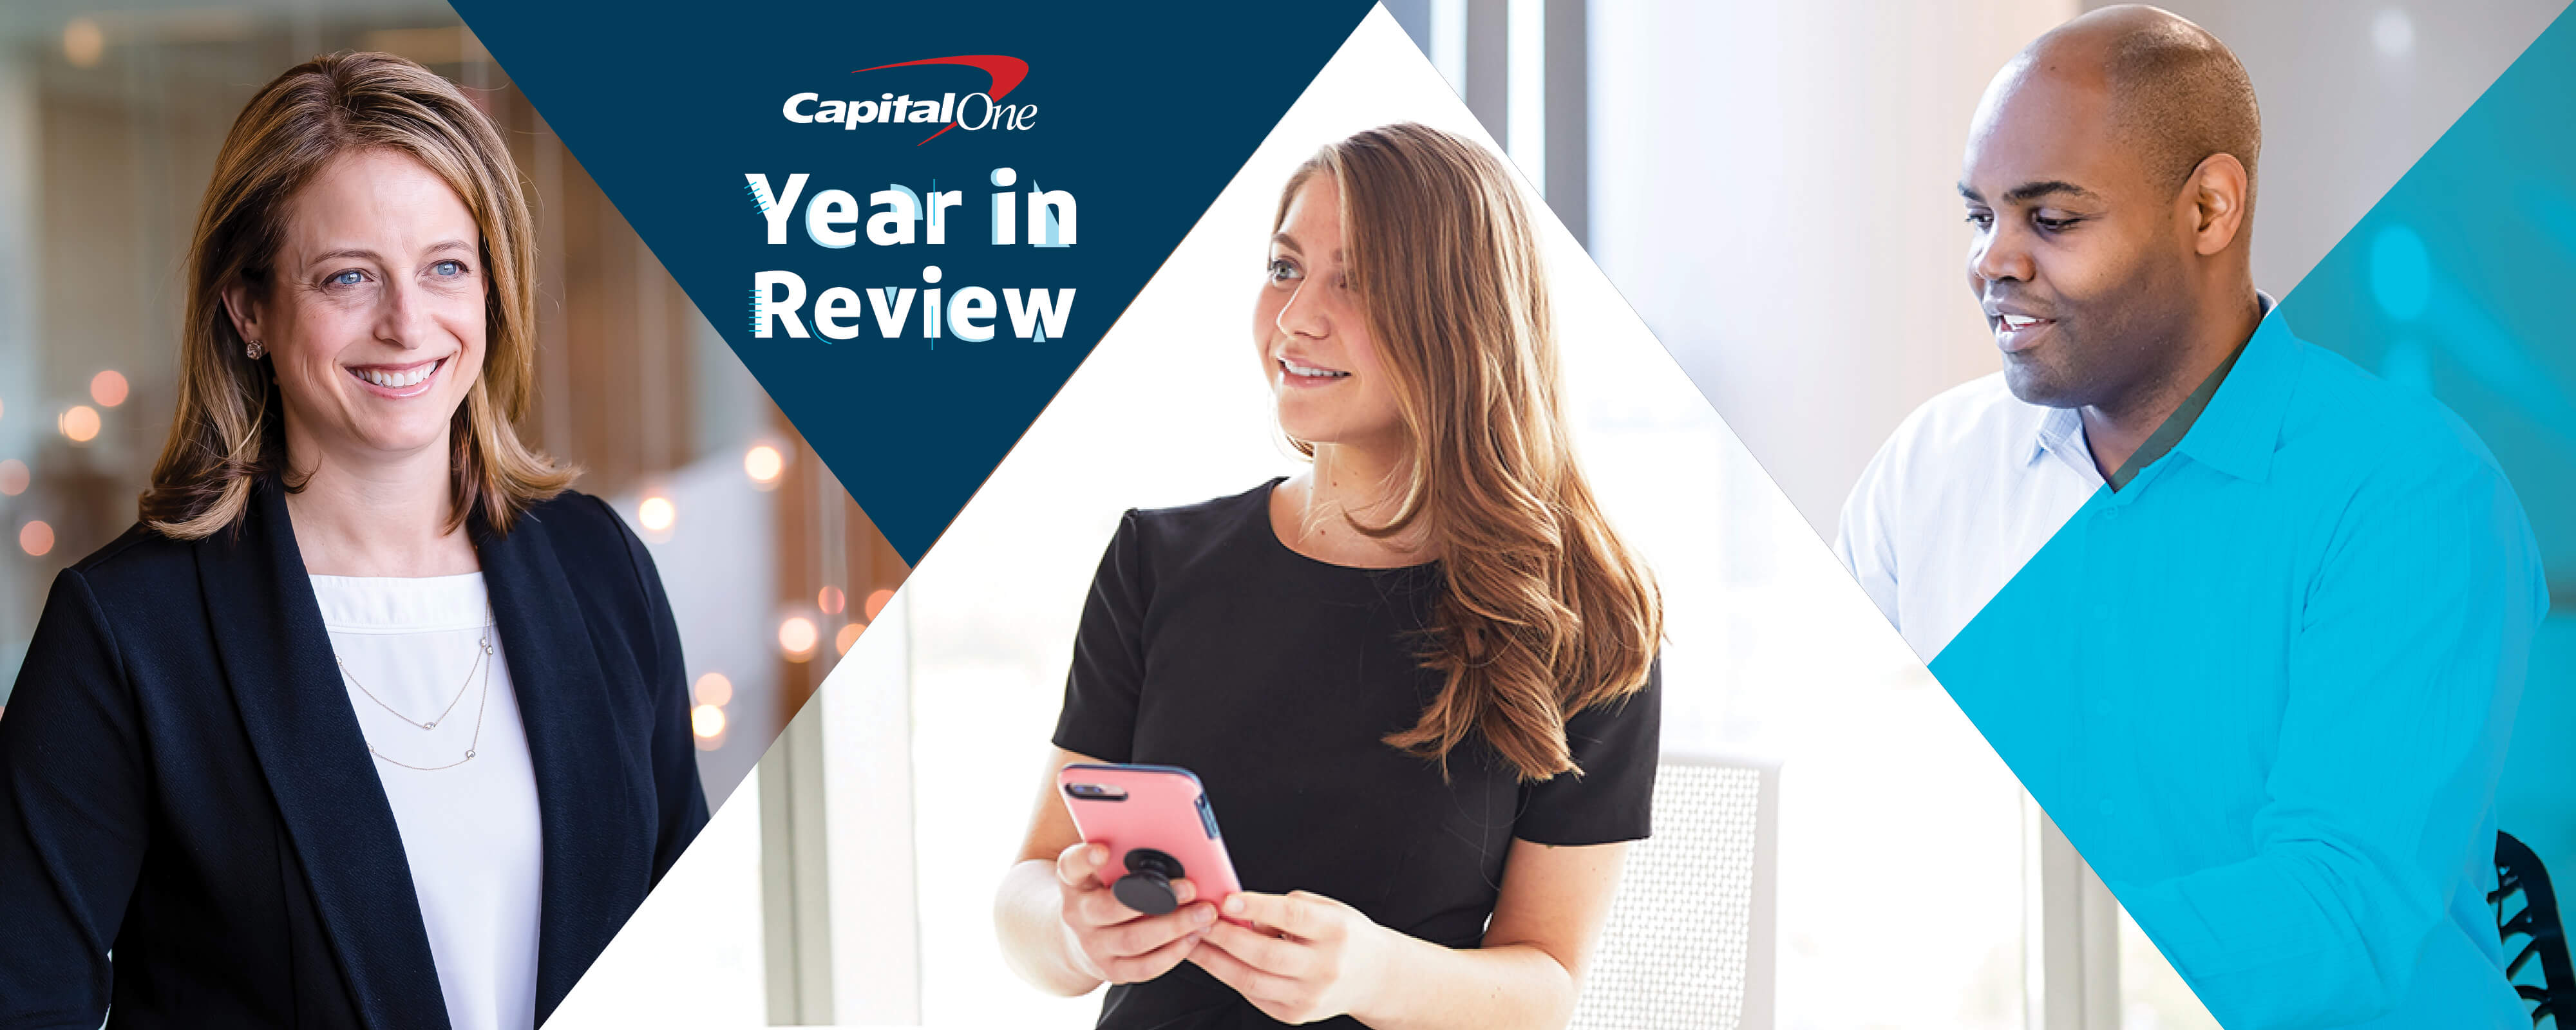 Capital One associates discuss the Careers Blog 2020 Year in Review